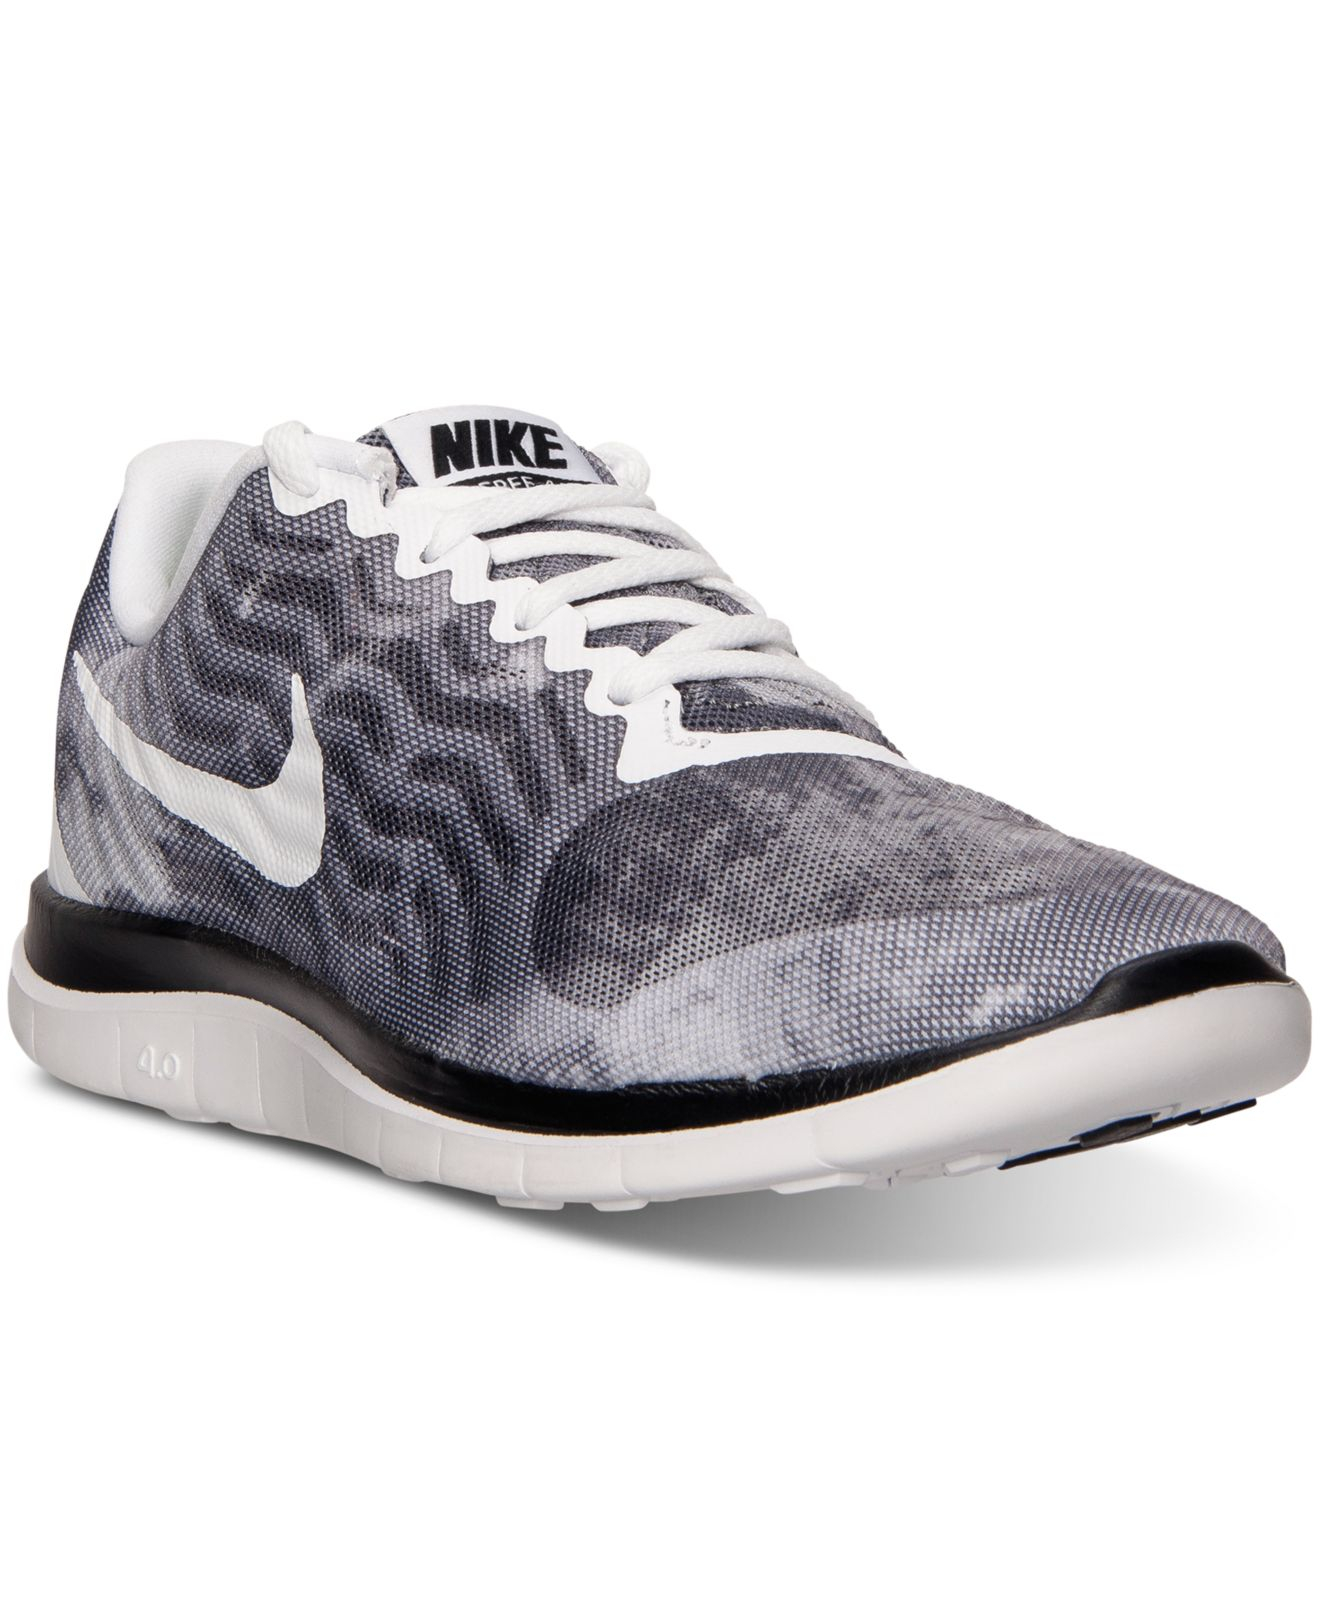 nike free run 4.0 finish line